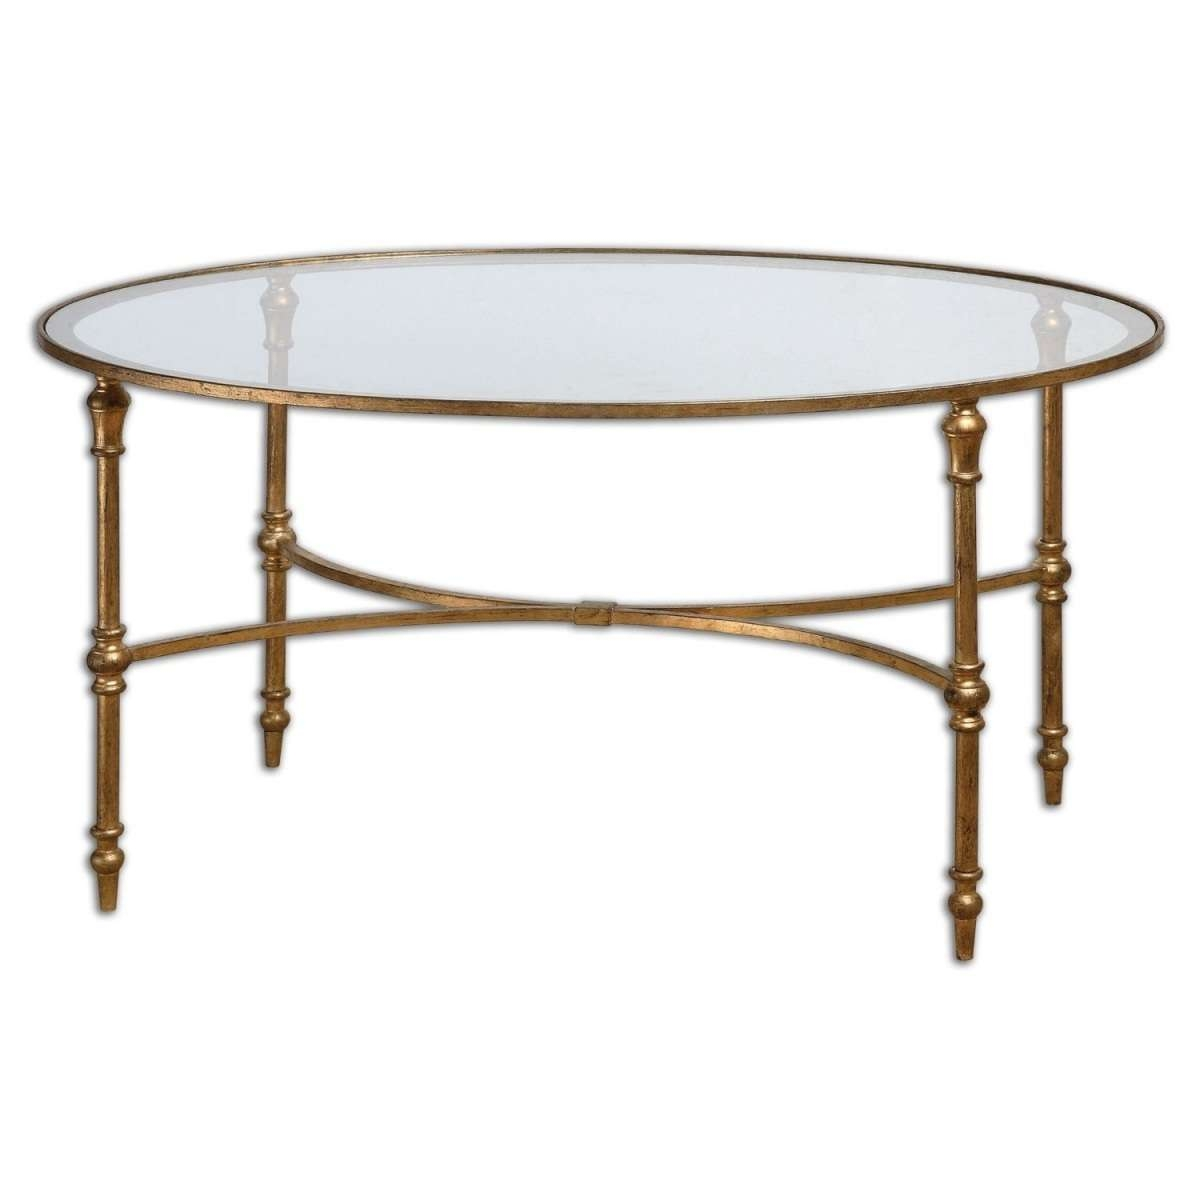 Glass And Metal Coffee Tables For Sale Metal Legs Make Glass Round Regarding Famous Glass Metal Coffee Tables (View 14 of 20)